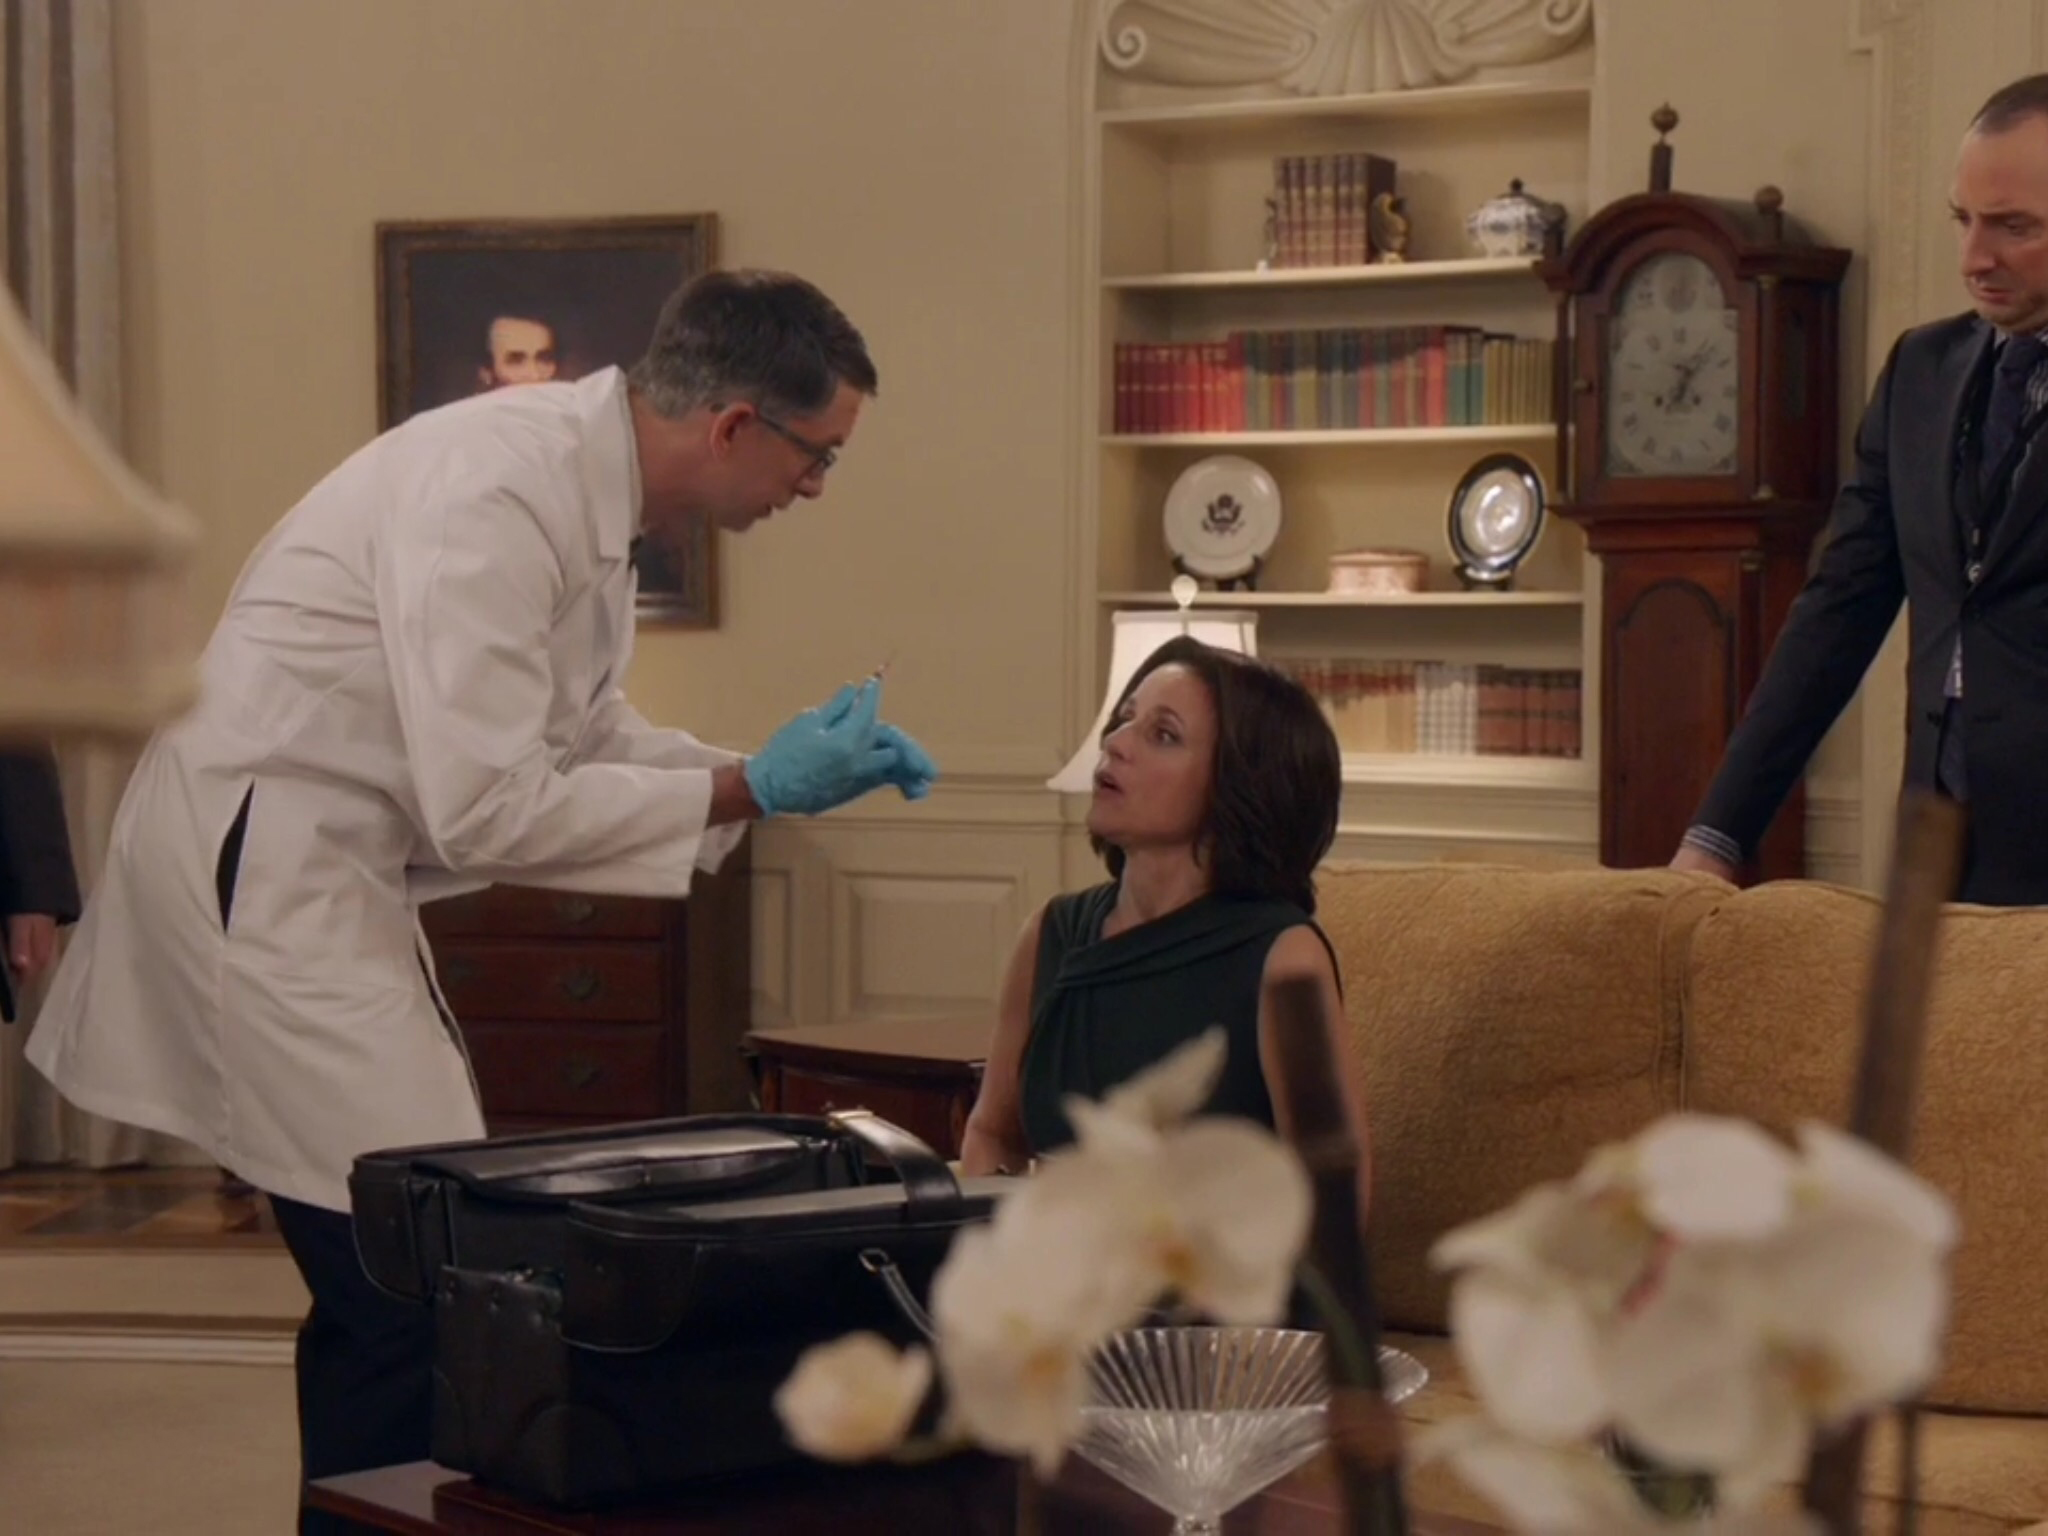 Todd Aaron Brotze as Dr. Abernathy in Veep, with Julia Louis-Dreyfus and Tony Hale